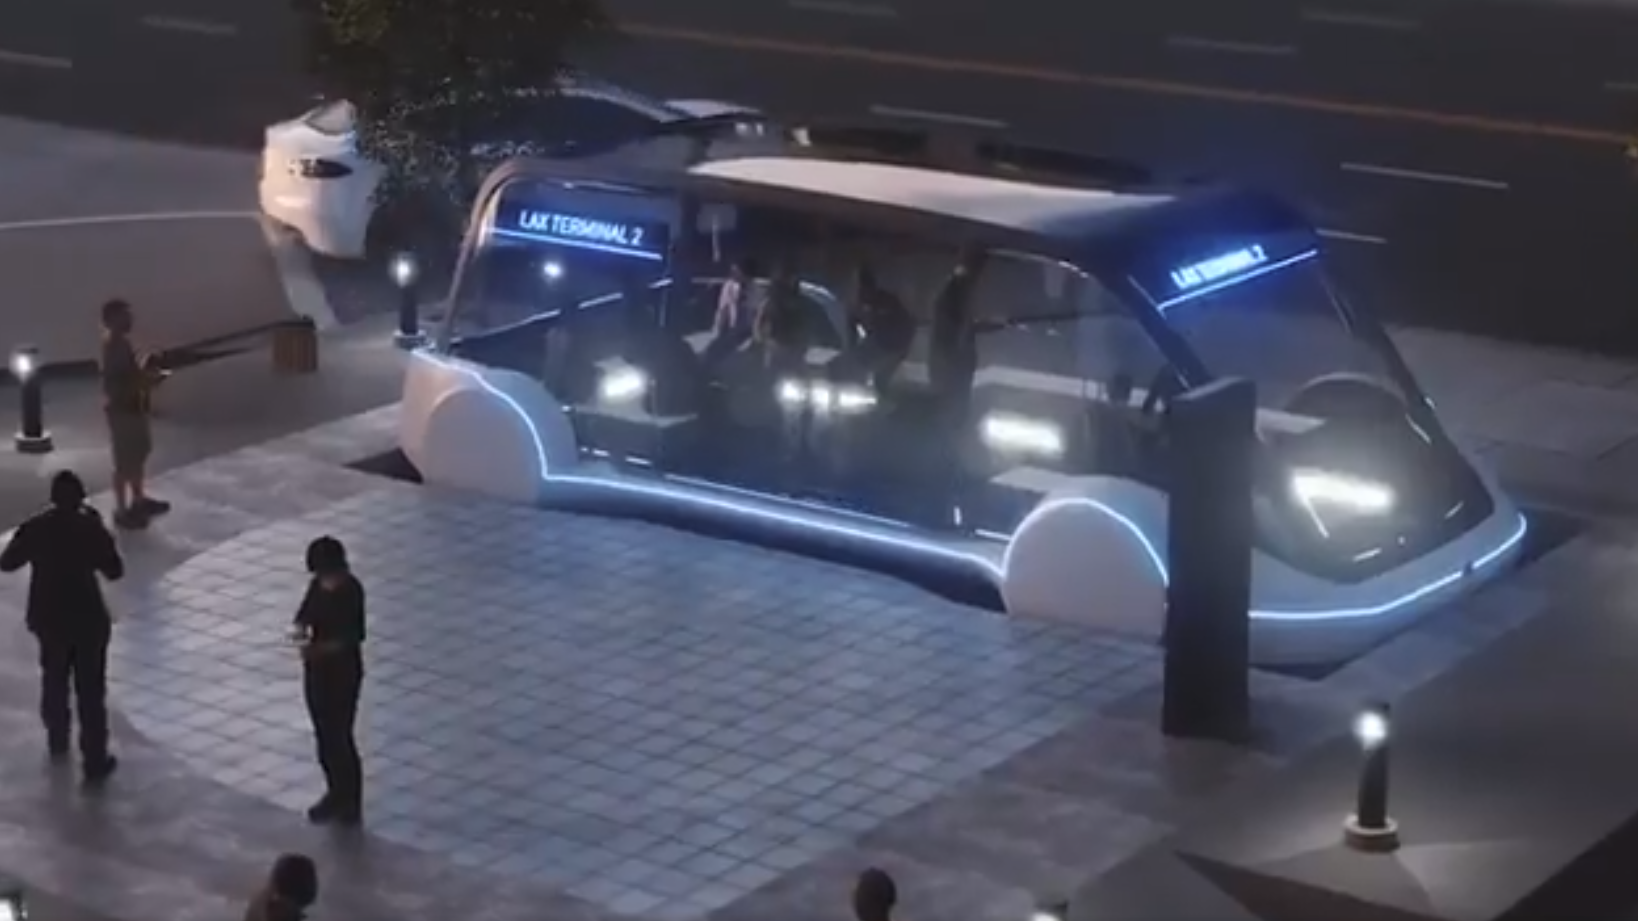 Elon Musk's Boring Company Concept Is Now Even More Hopelessly Complicated